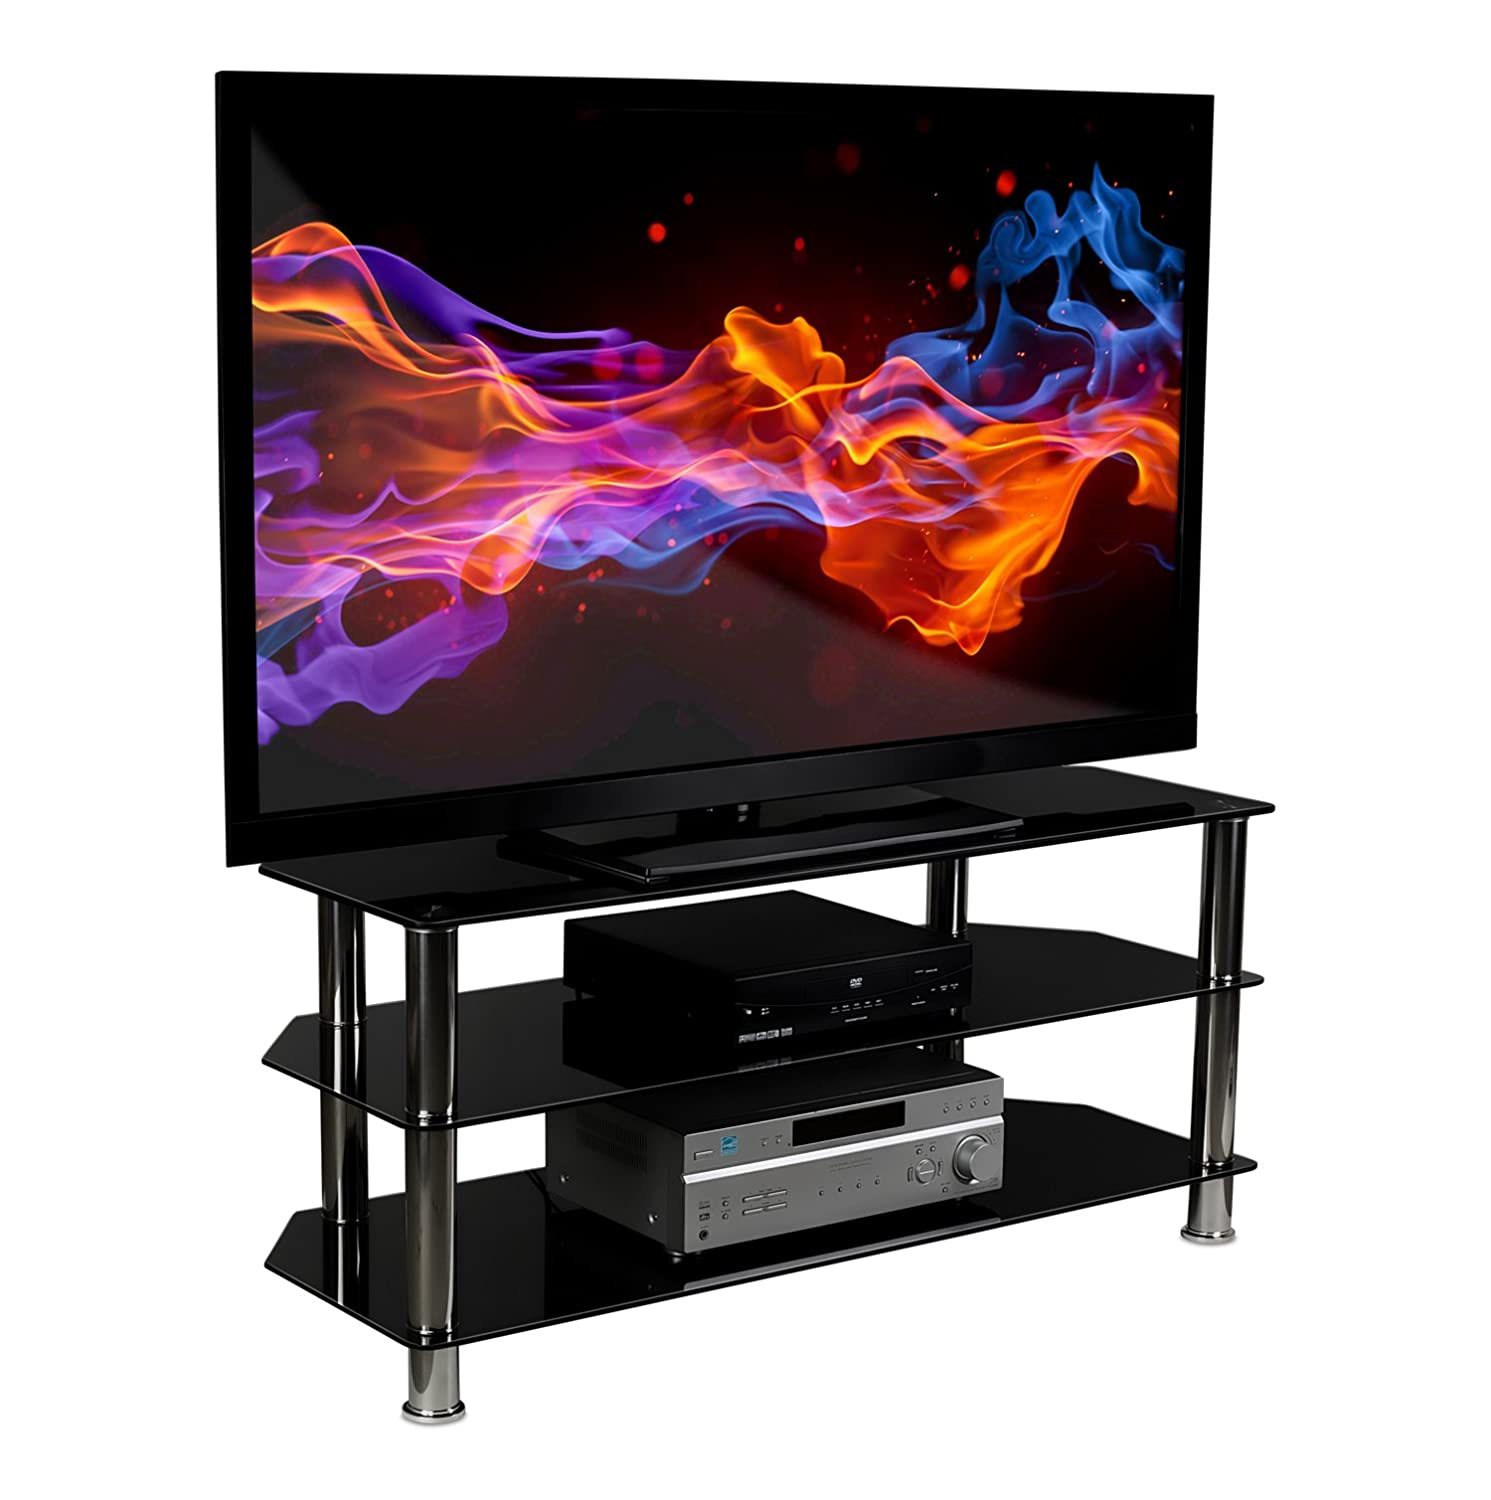 58b59b5b1e7 Amazon.com  Mount-It! Glass TV Stand for Flat Screen Televisions Fits 40 42  46 47 50 55 60 Inch LCD LED OLED 4K TVs